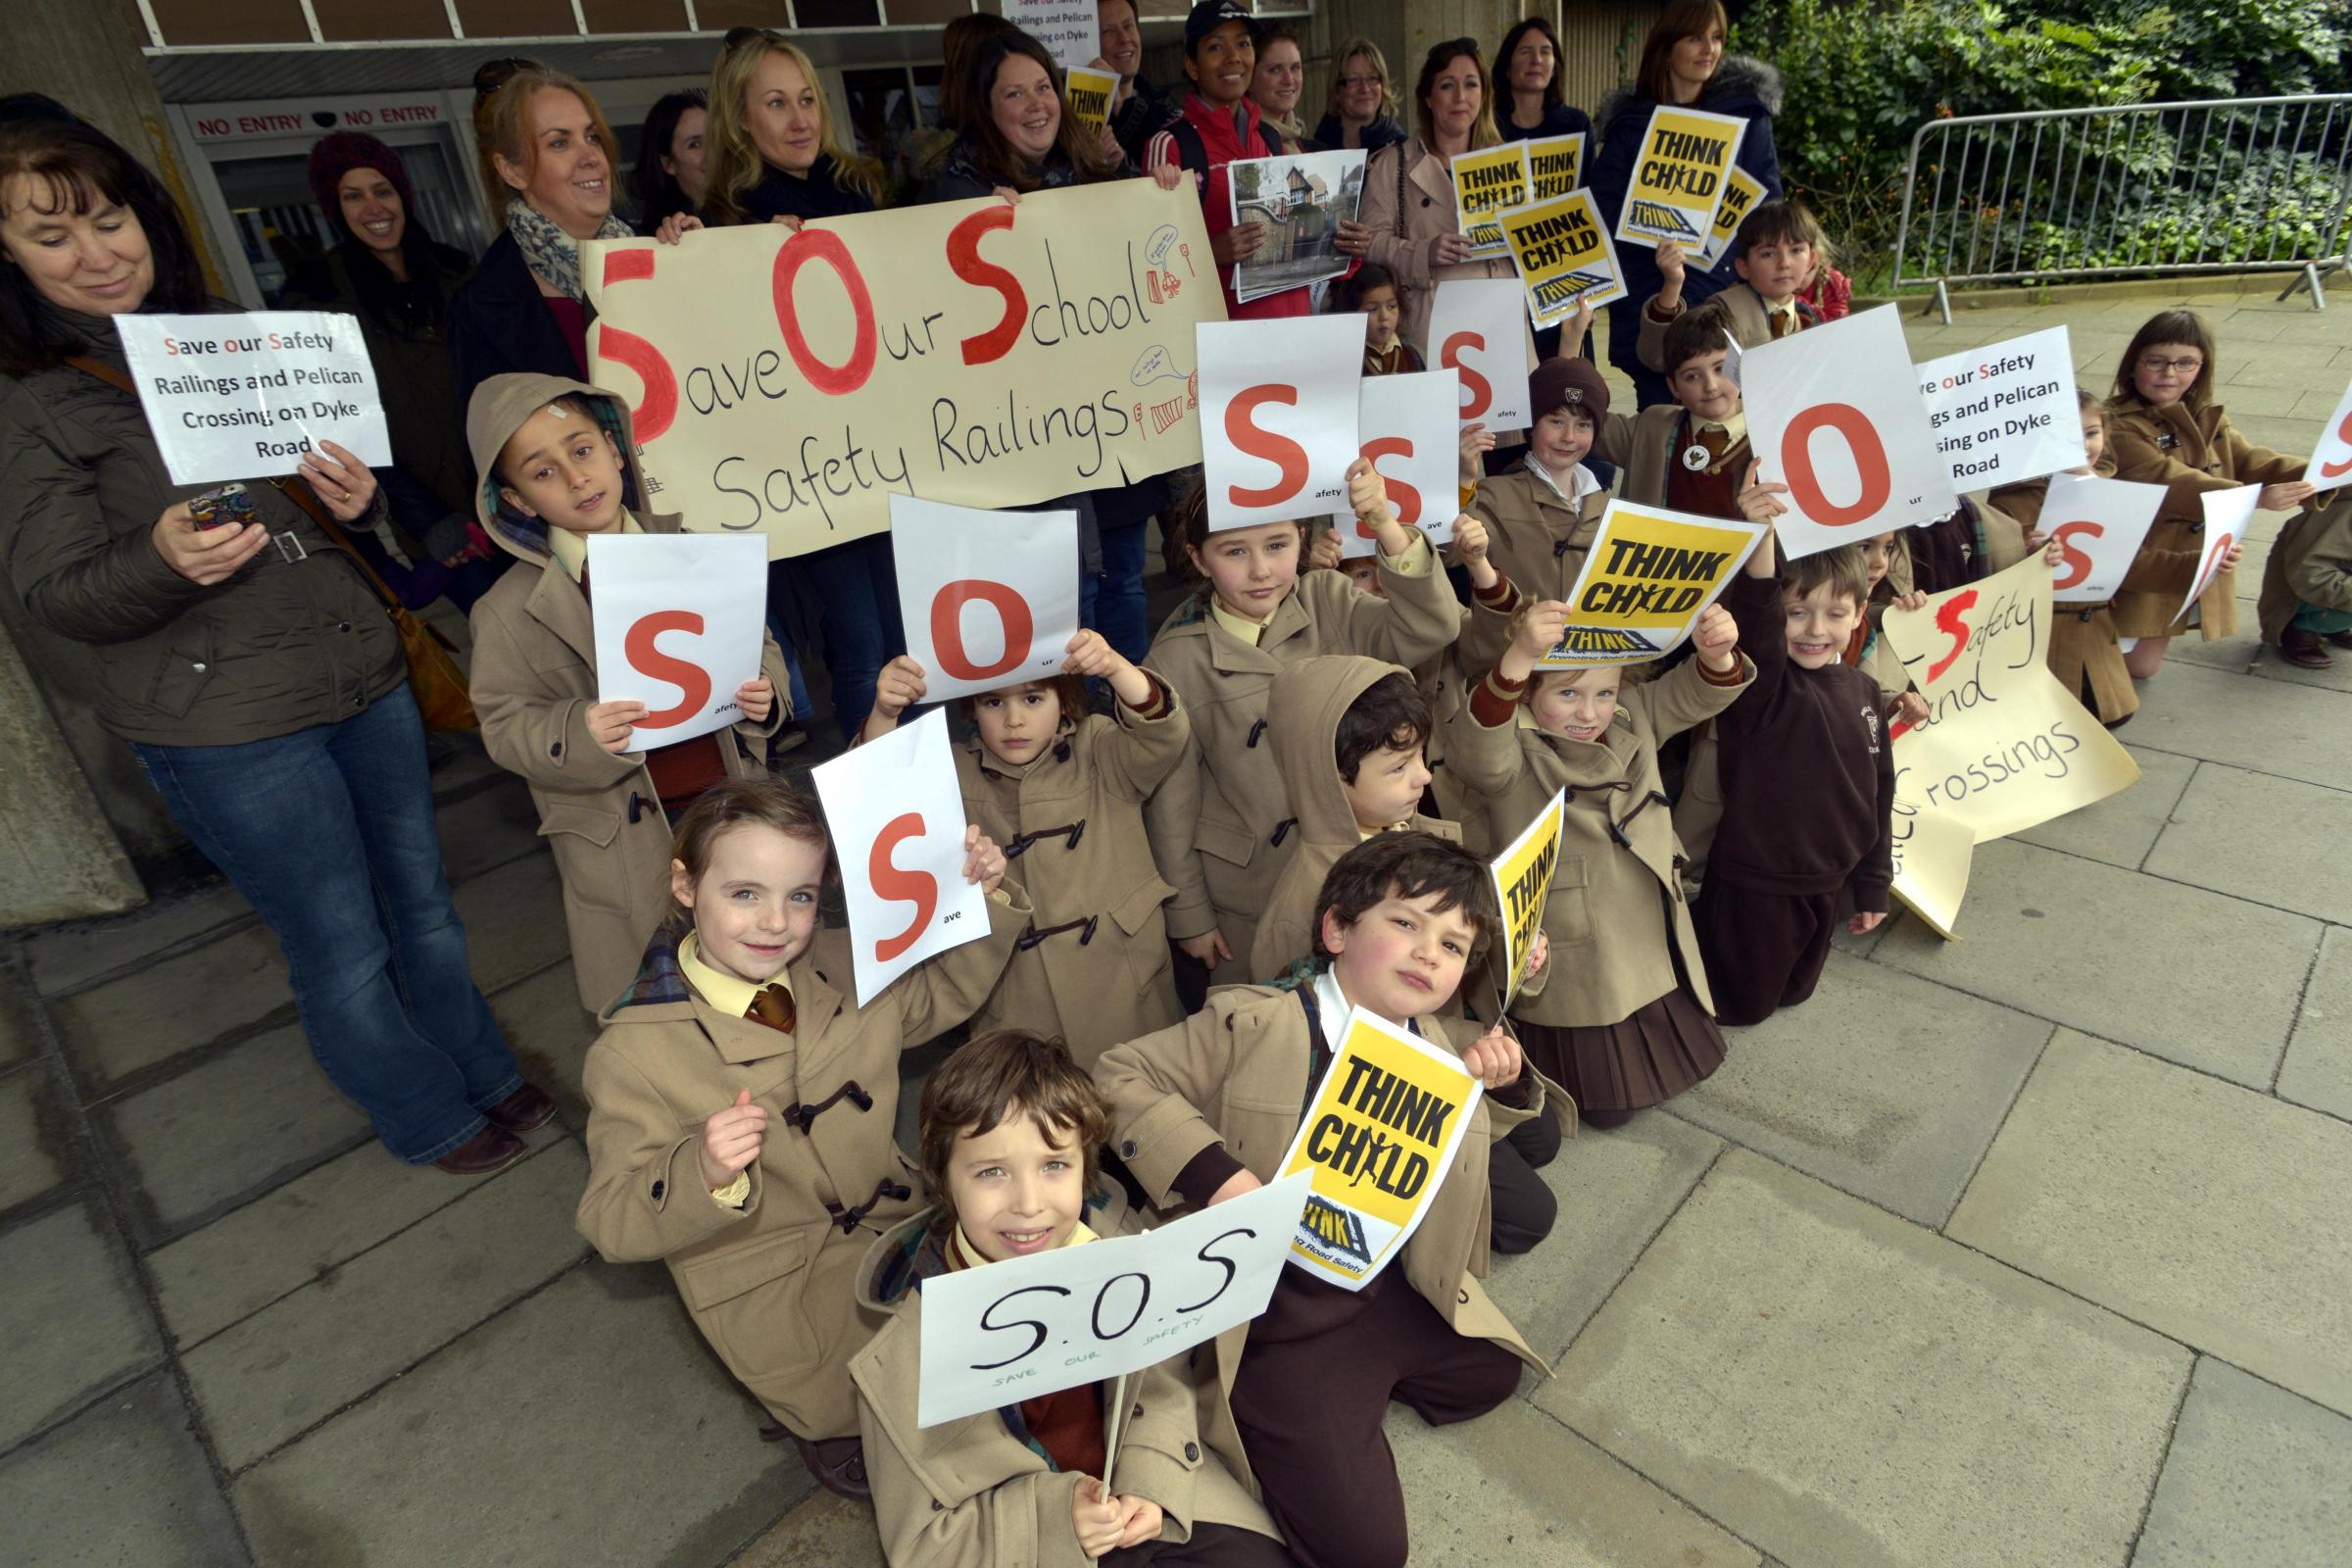 Cross pupils stage railings protest outside Hove Town Hall